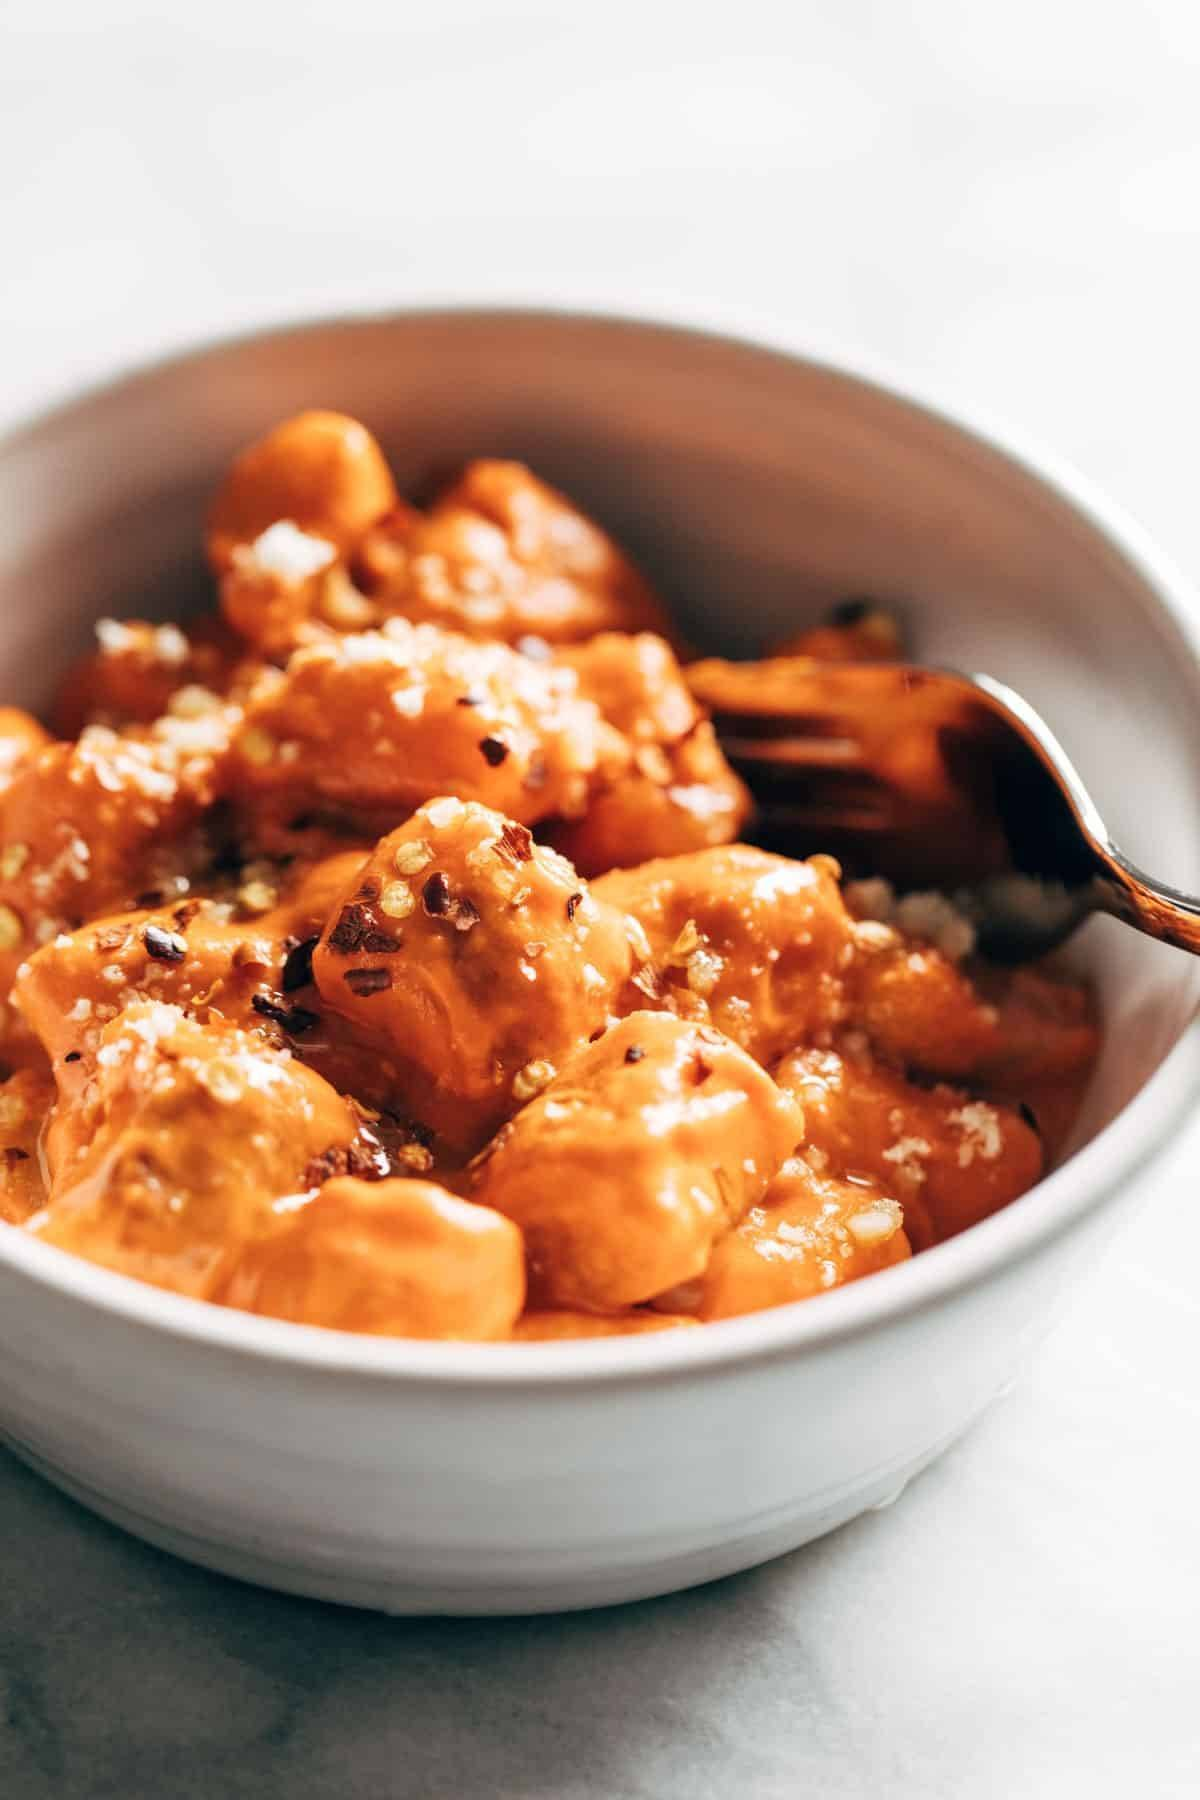 Cauliflower gnocchi with vodka sauce in a bowl.